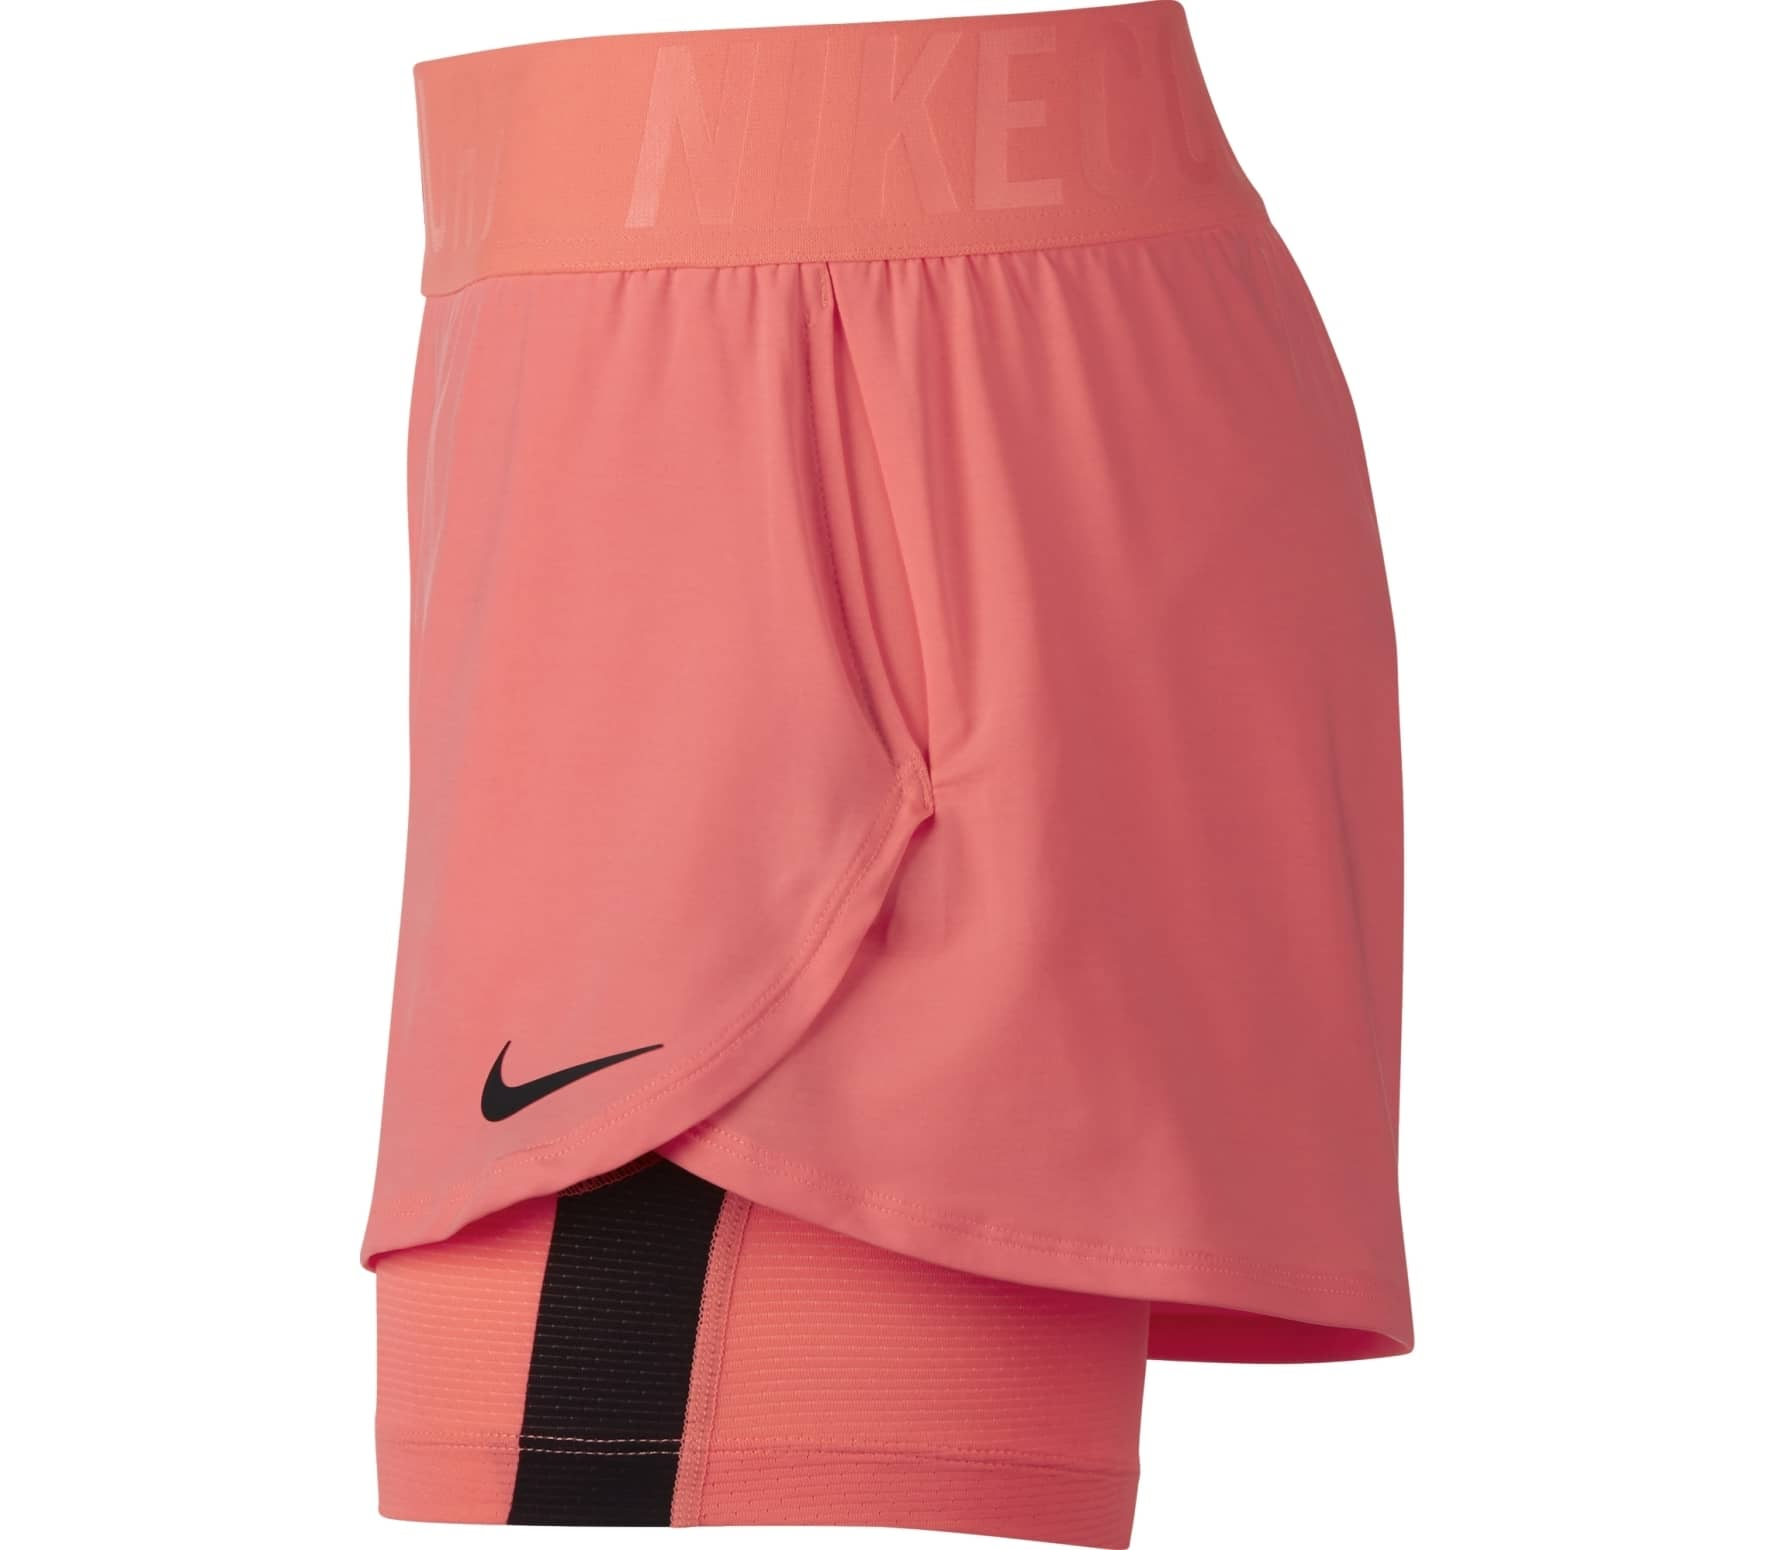 Nike - Court Dry Ace women s tennis shorts (pink) - buy it at the ... 7aff646f5e